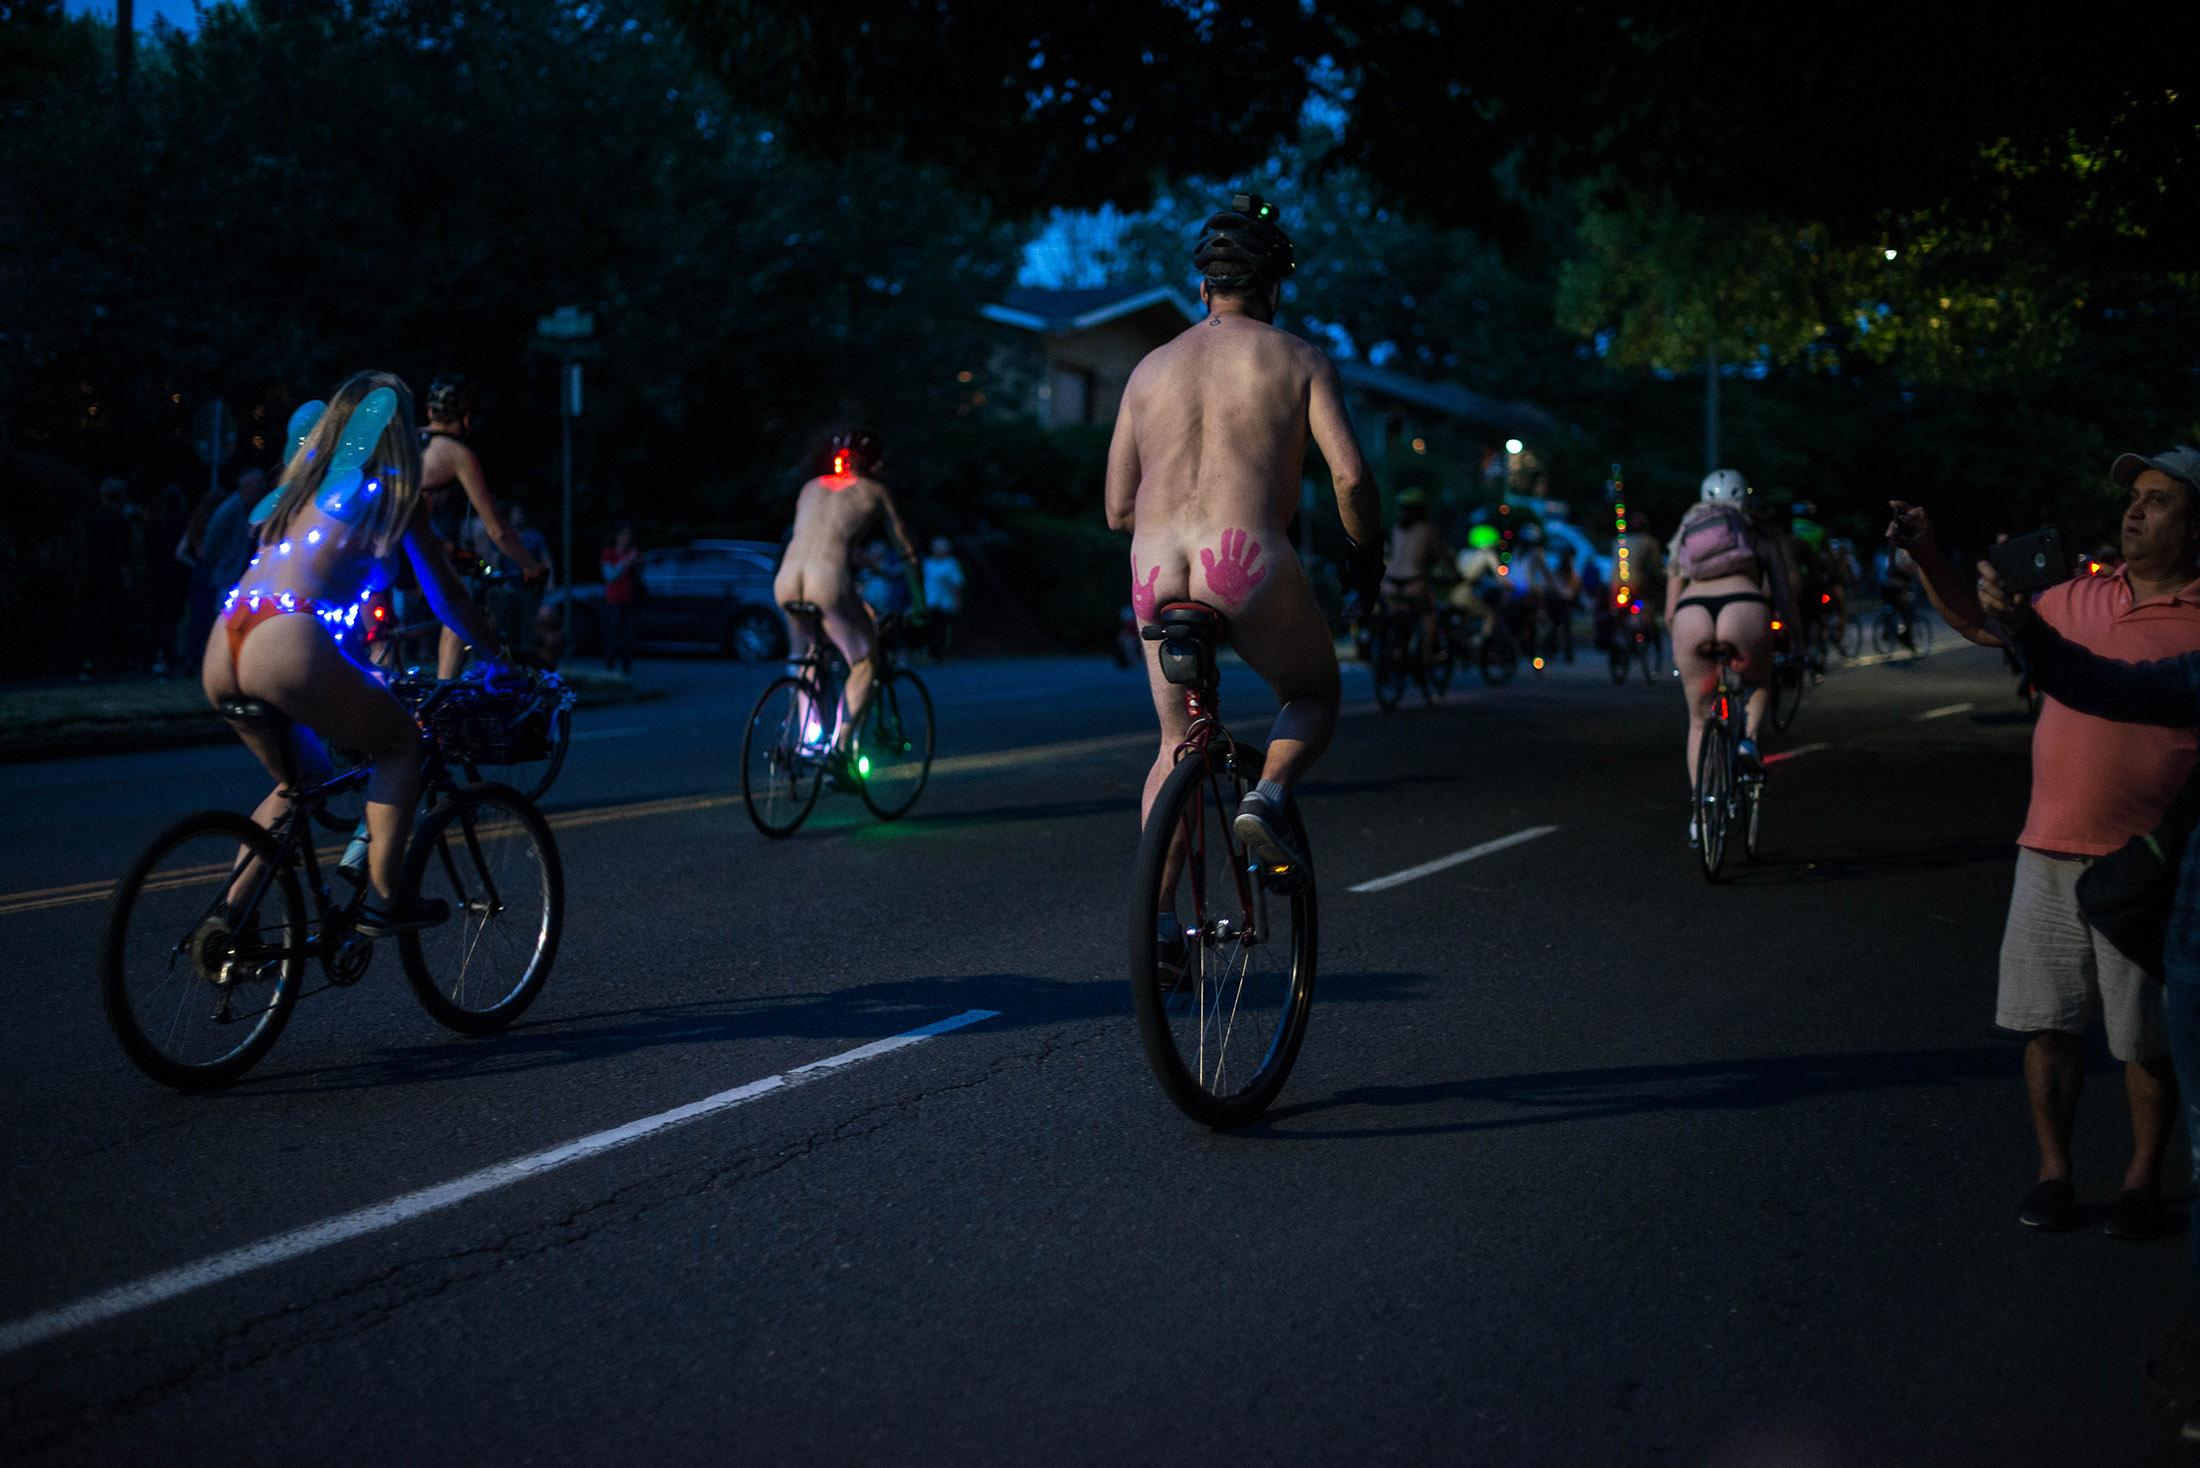 Bare bicyclists filled the streets of Portland on Saturday for the 15th annual World Naked Bike Ride. The ride highlights global oil dependency and the vulnerability of cyclists on the roads. The group gathered in Southeast Portland's Laurelhurst Park before riding through the streets, crossing the Burnside Bridge. (KATU photo taken 6-29-2019 by Tristan Fortsch)